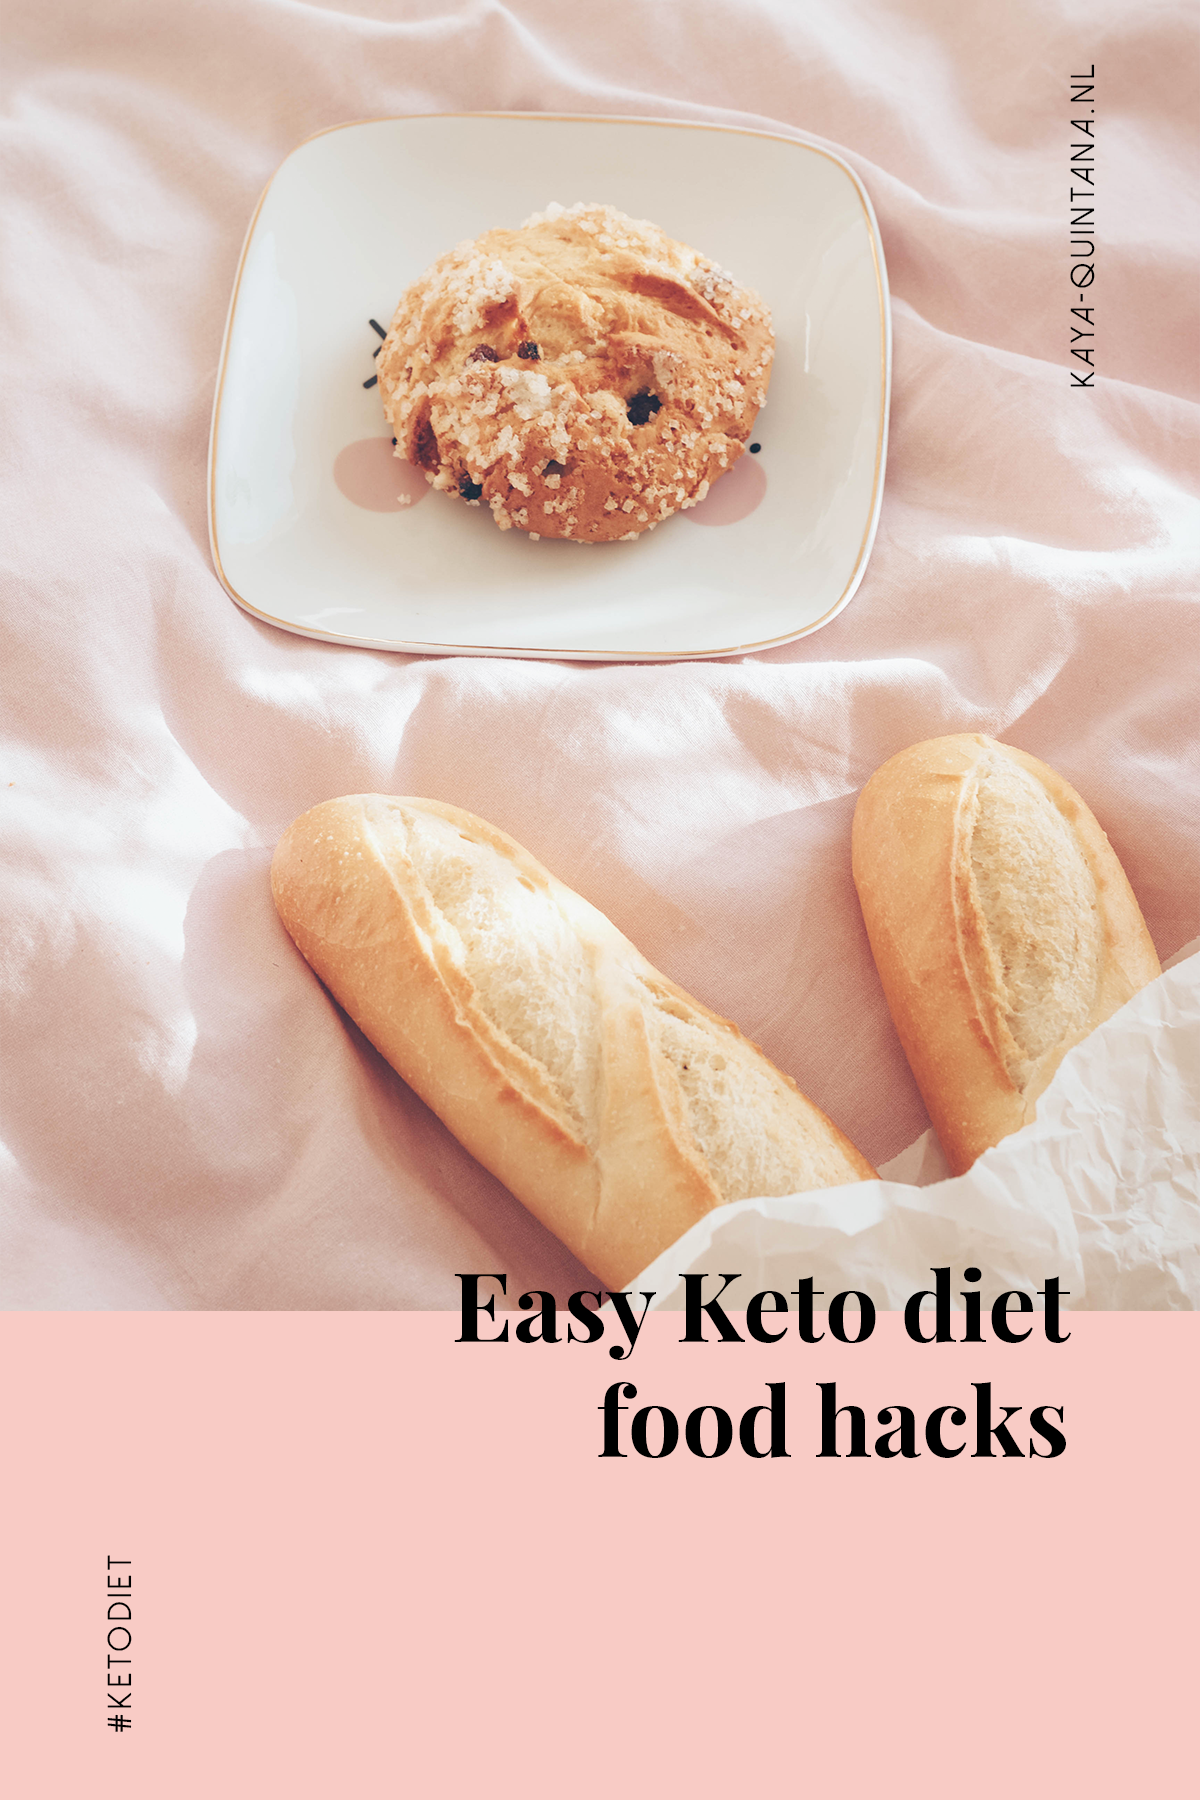 easy Keto diet food hacks